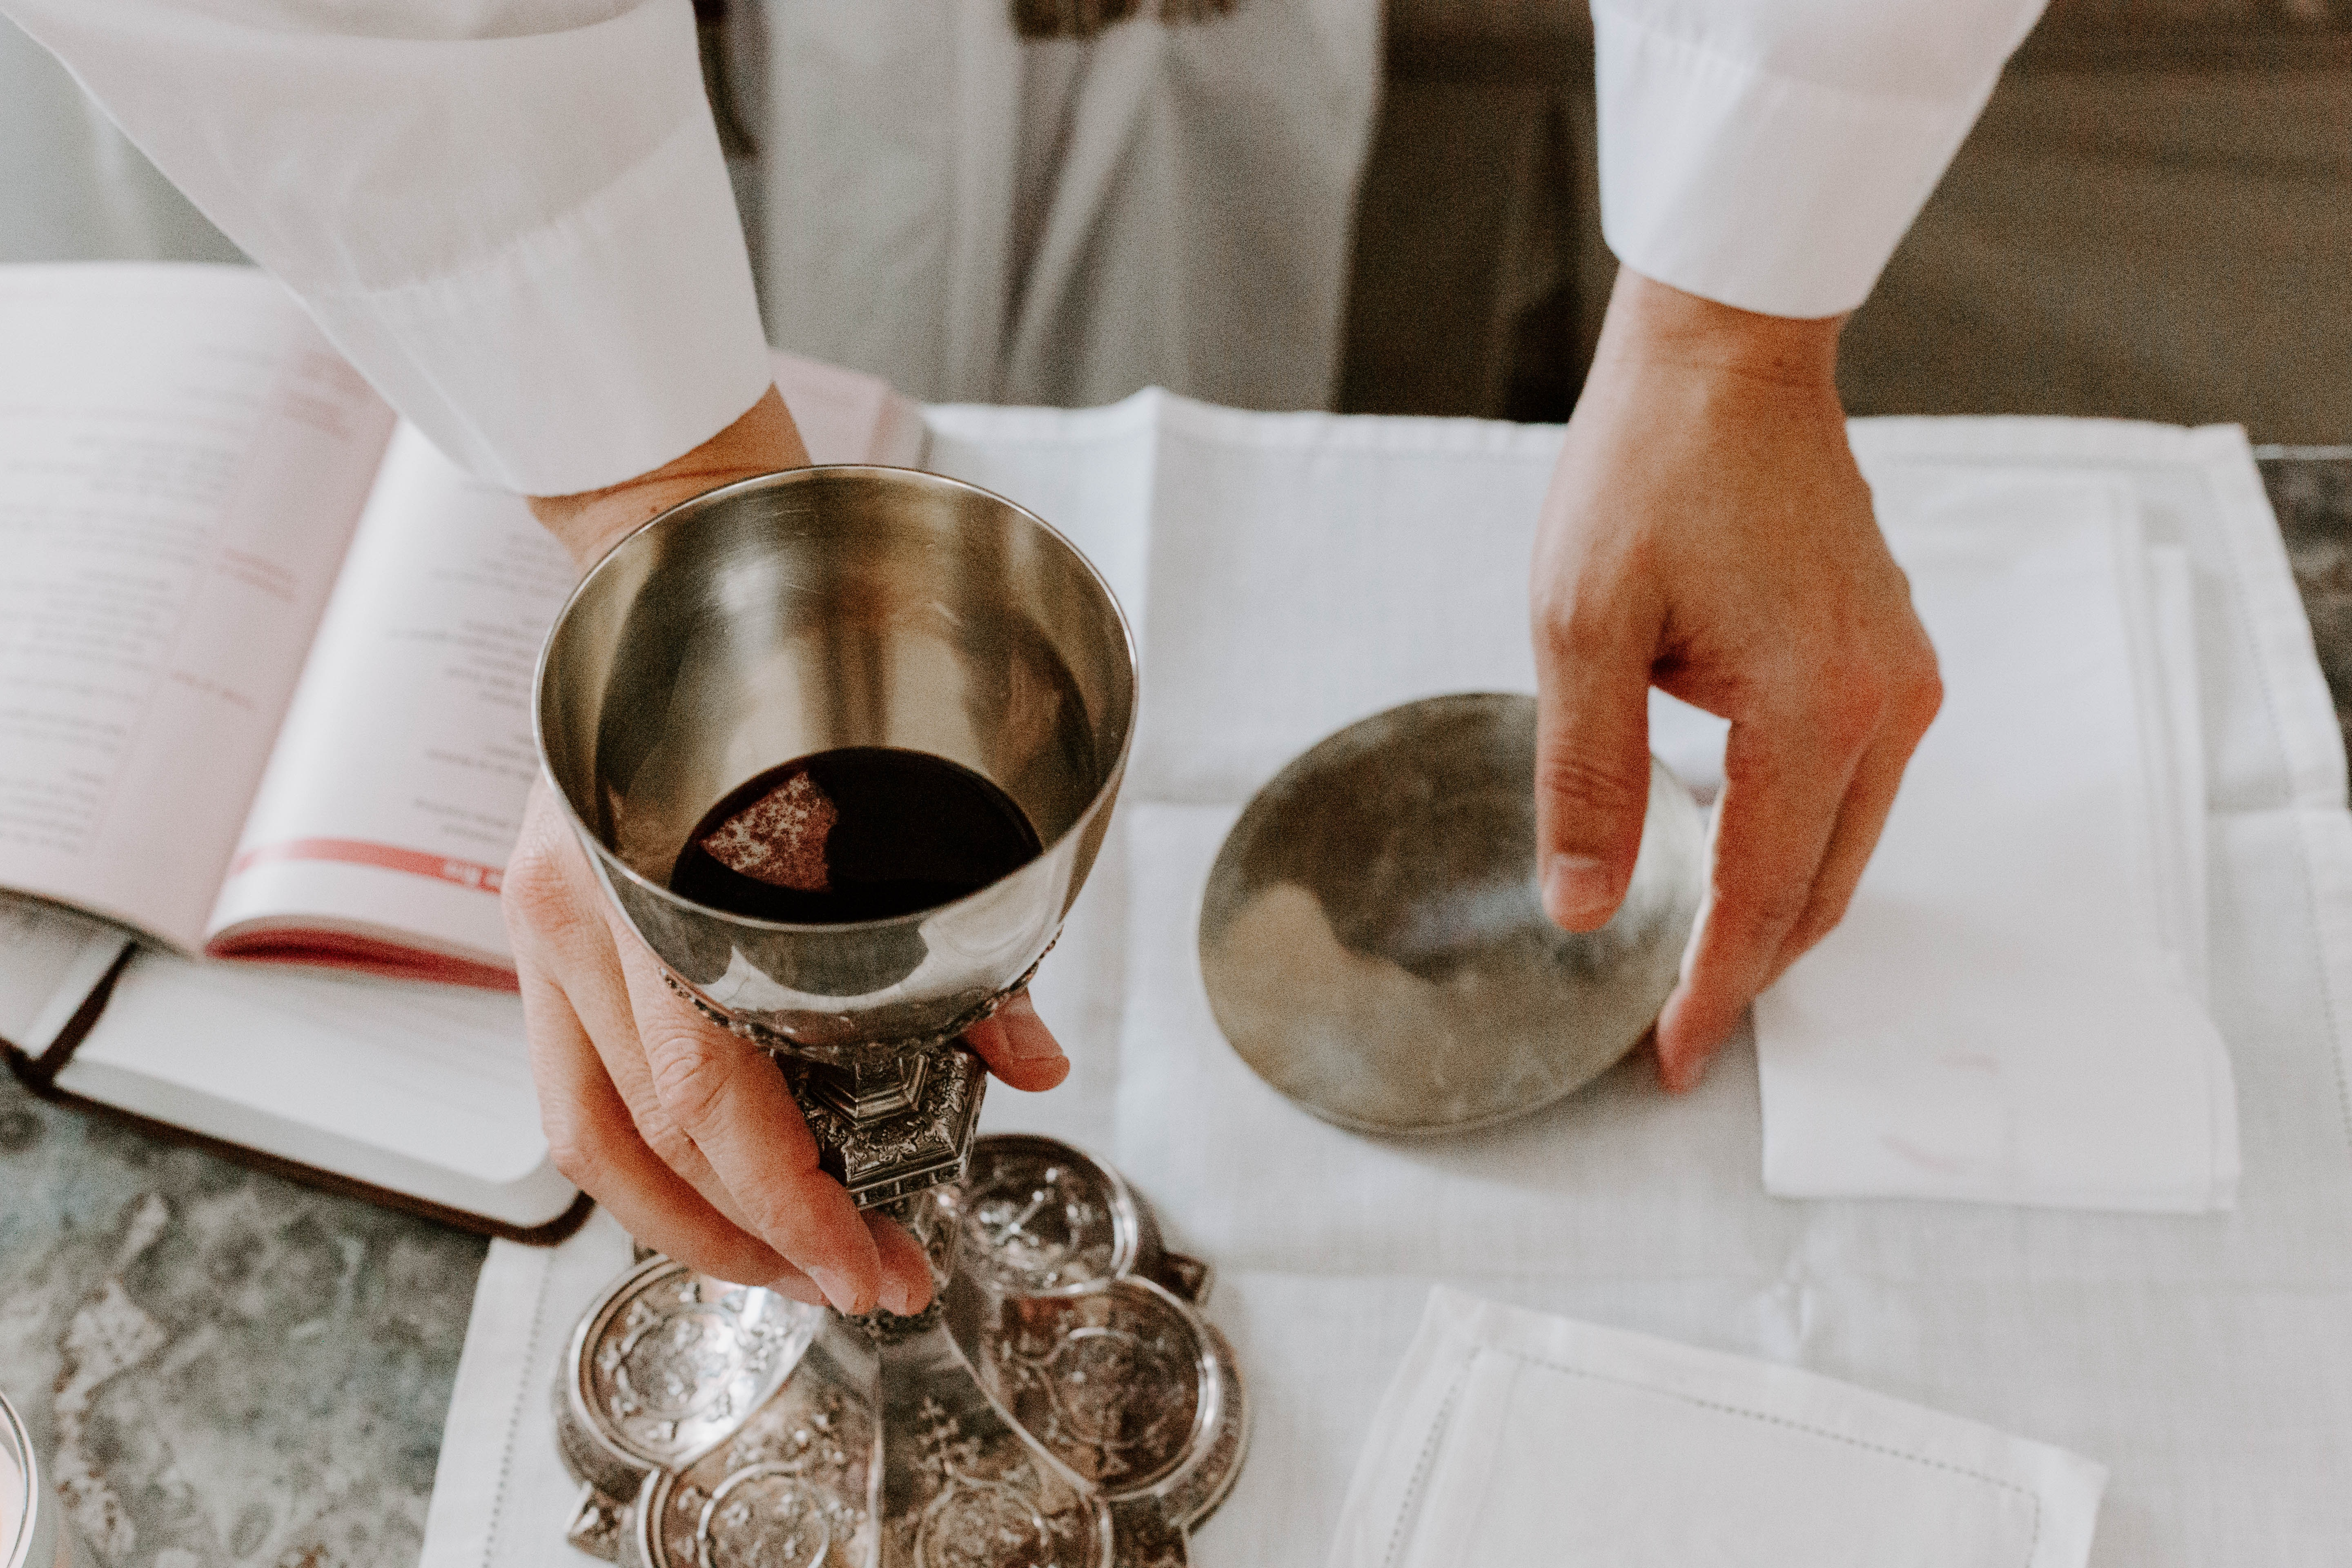 A priest holding a metal glass of Communion wine